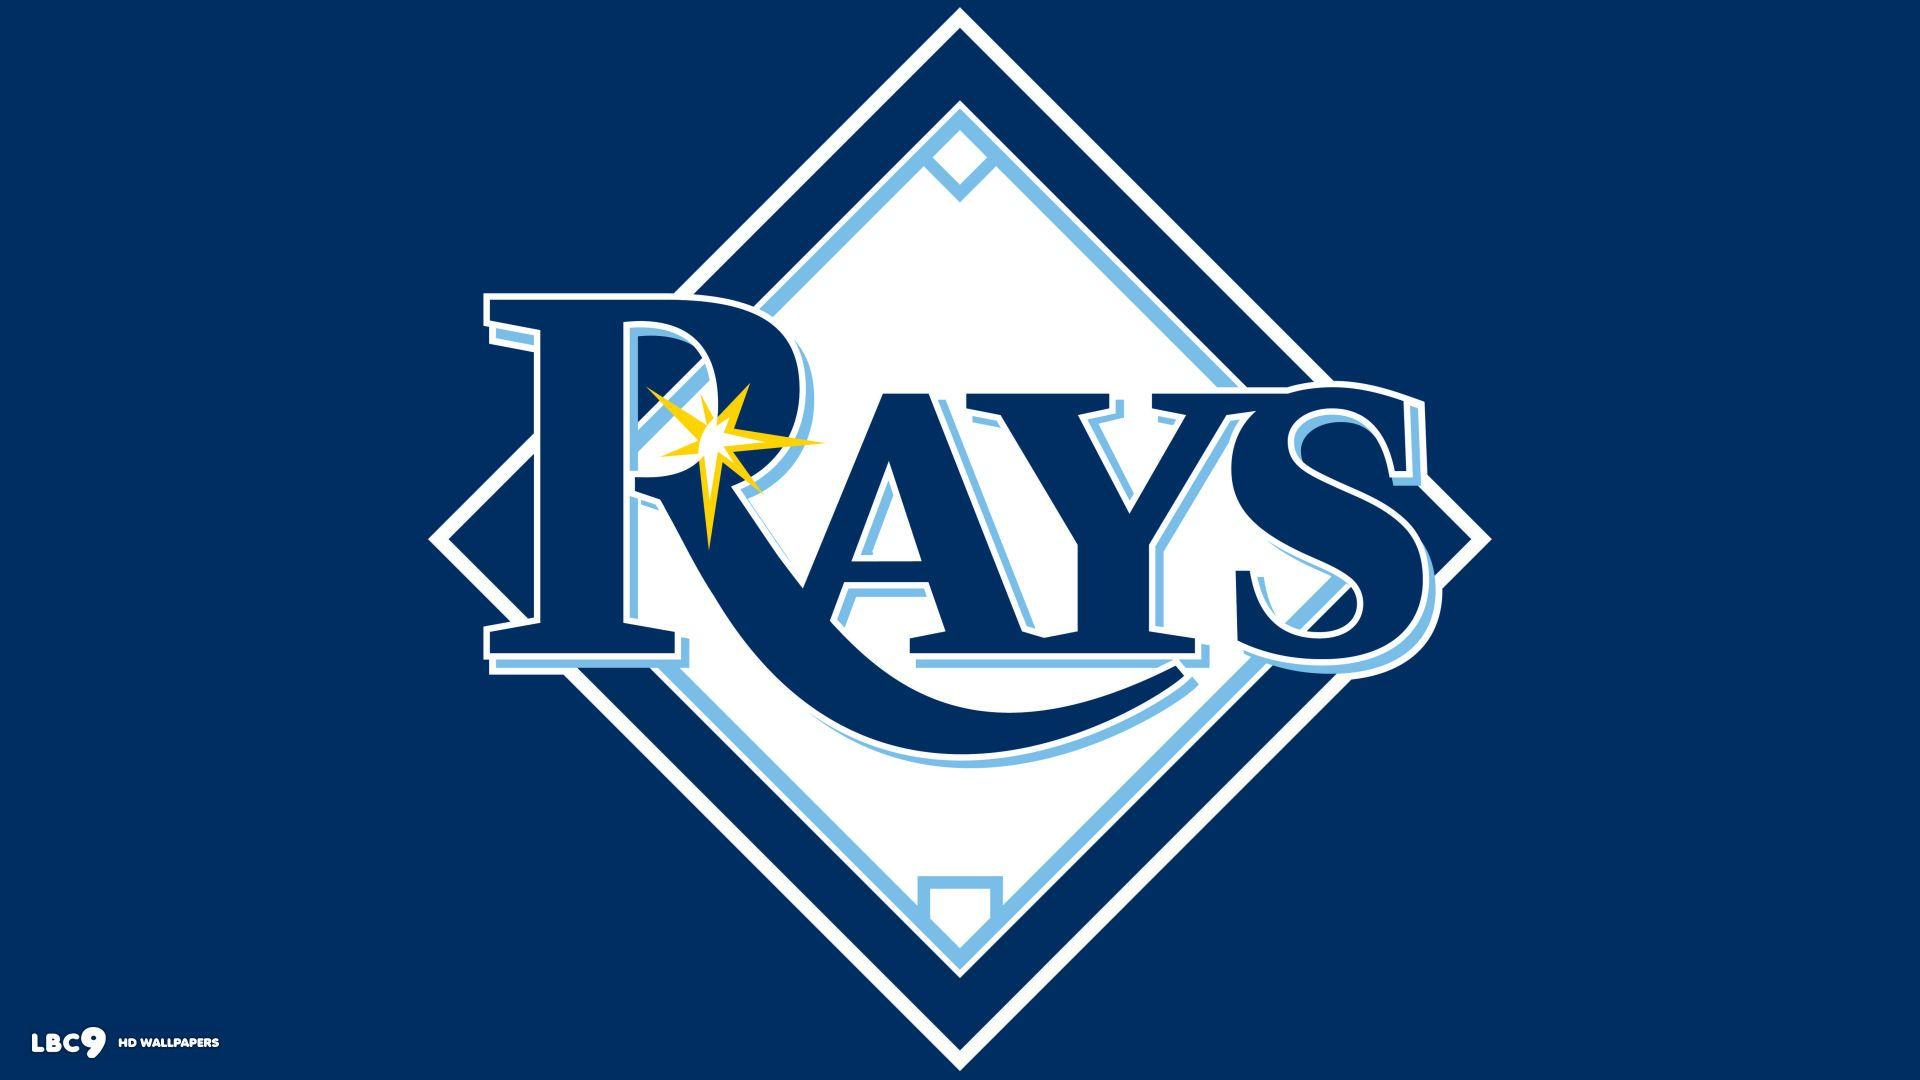 tampa bay rays wallpapers 1/6